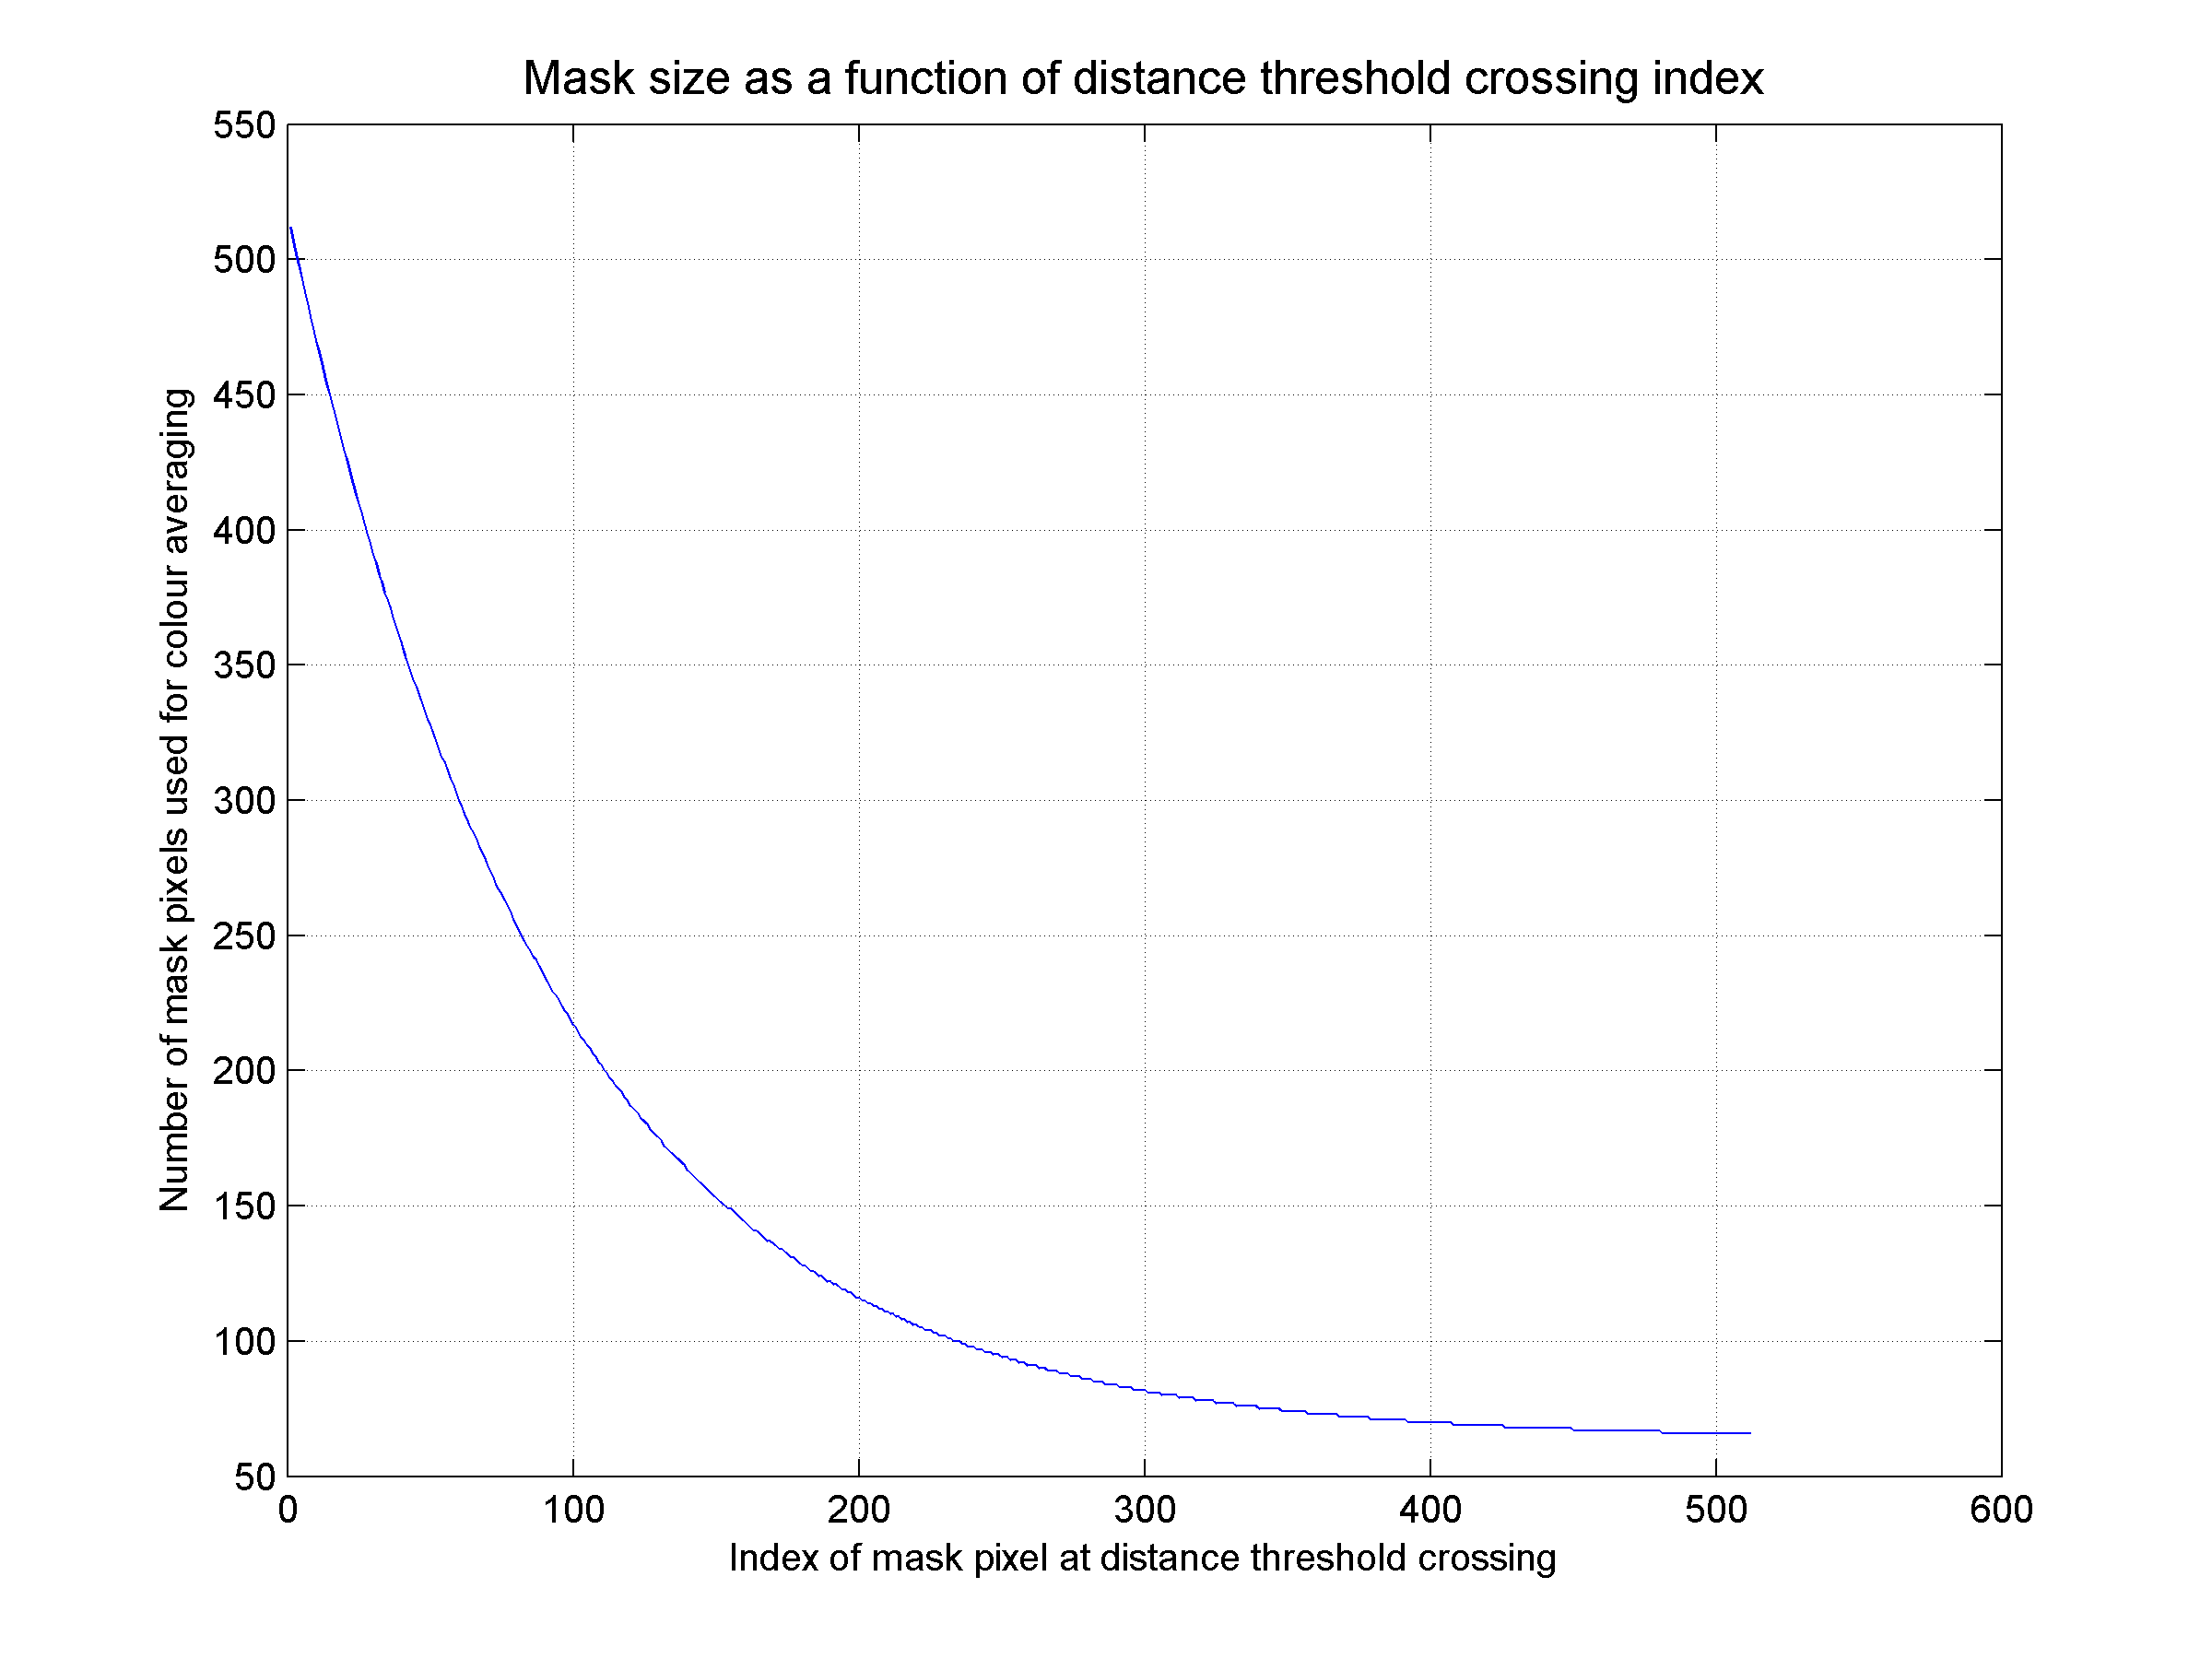 Plot of colour averaging mask sizes assigned to various distance threshold crossing indices in the full filtering mask